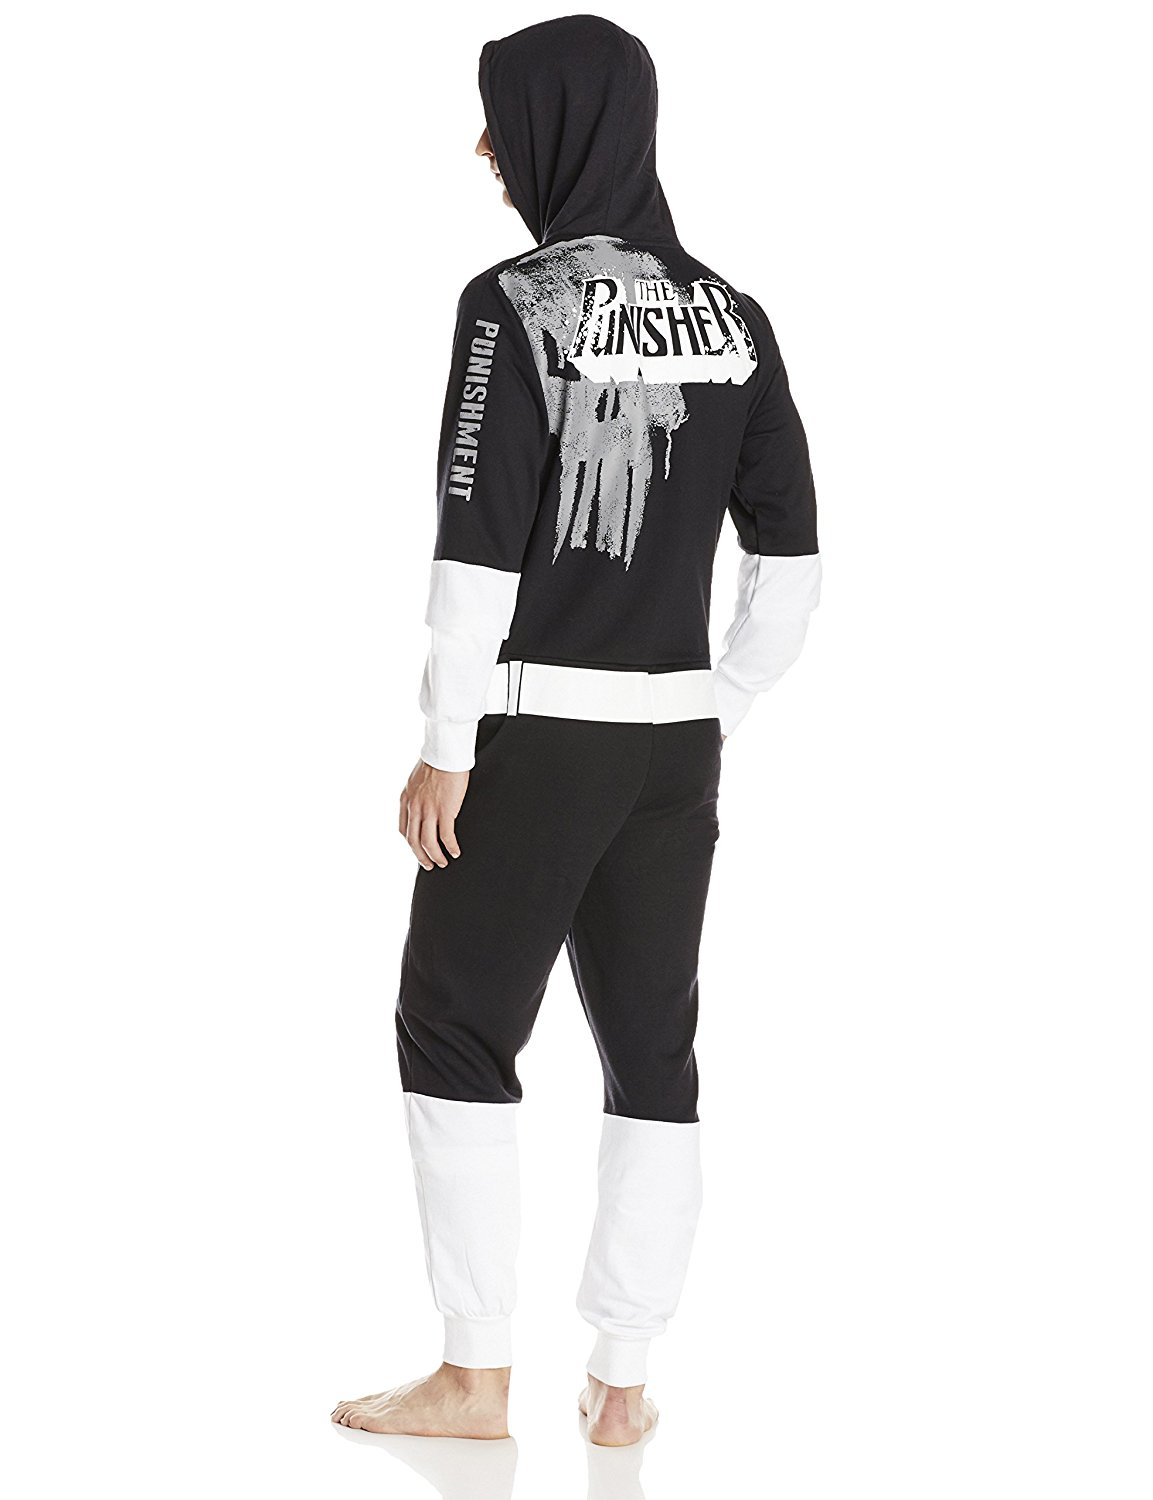 Marvel The Punisher Mens Fully Loaded One Jumpsuit Sweatshirt